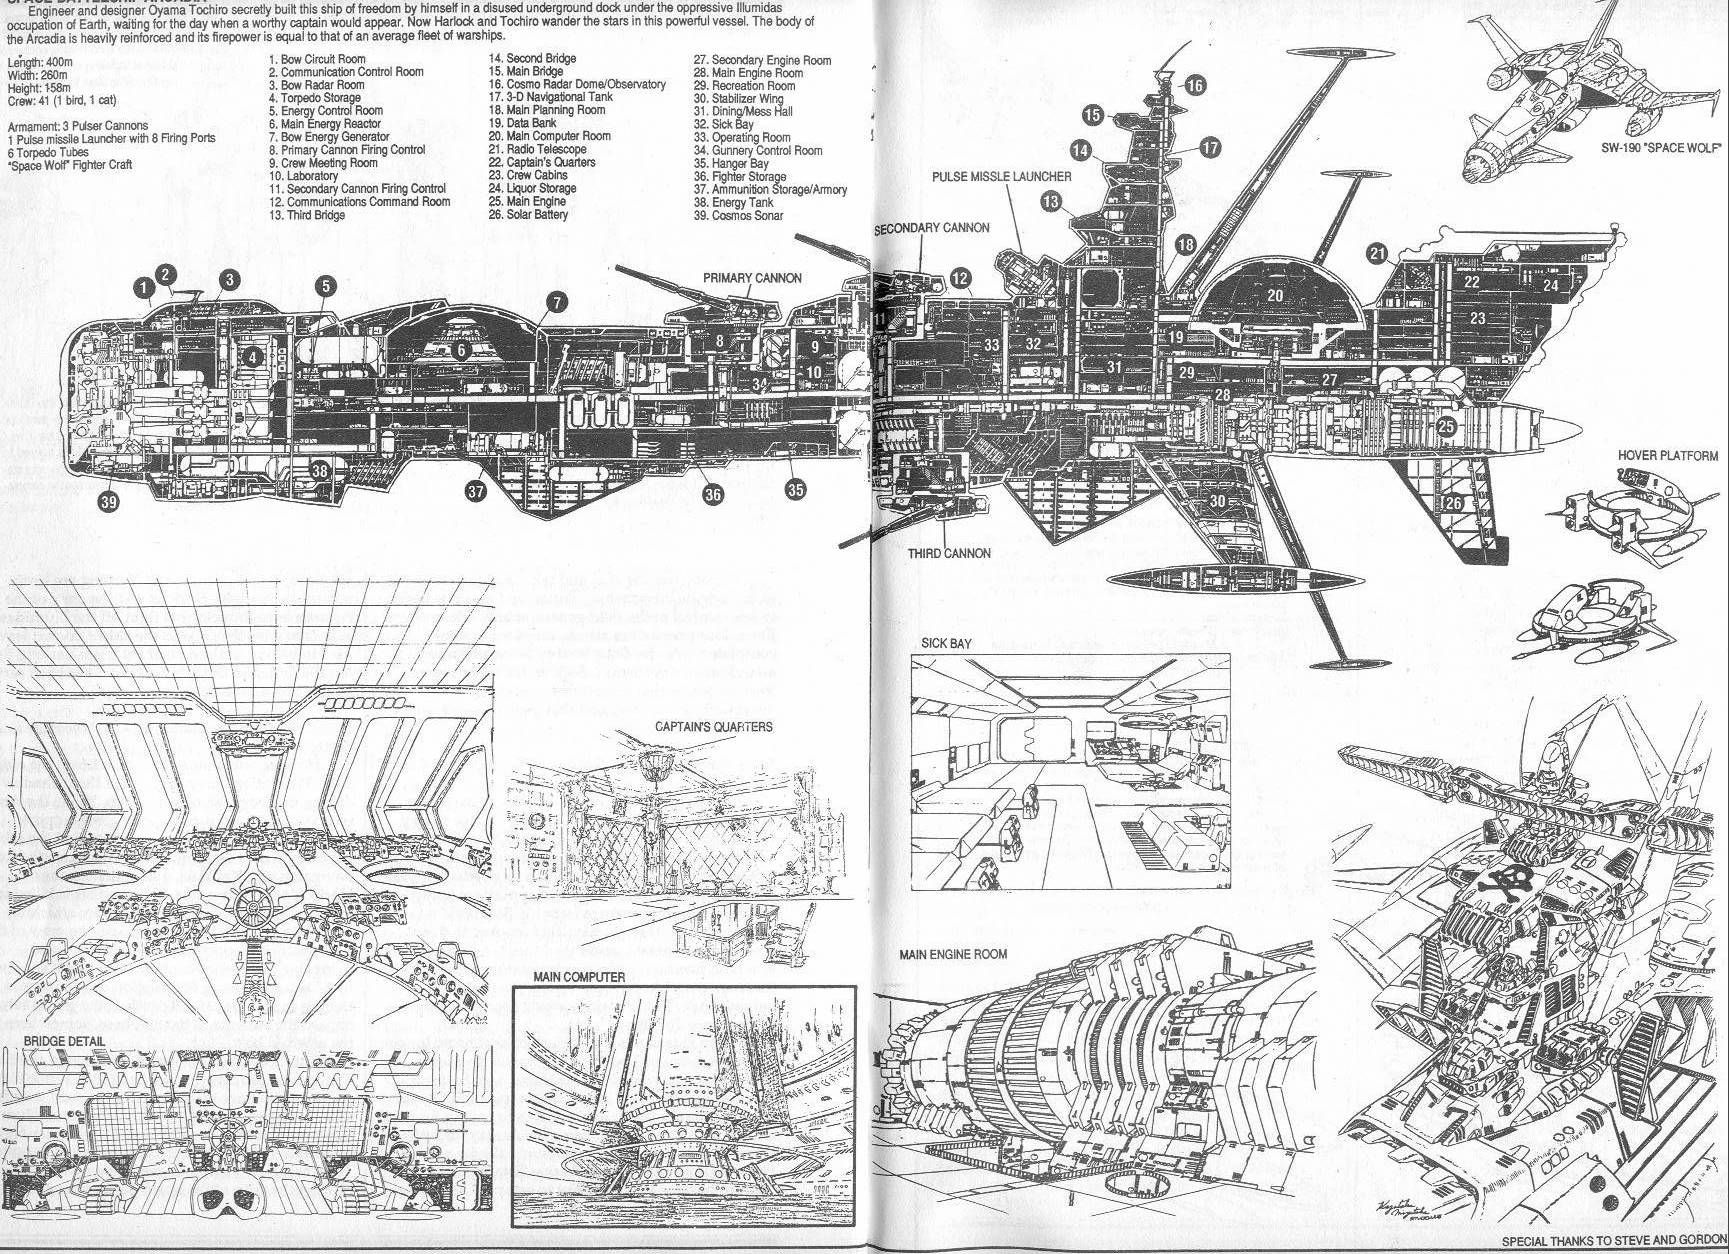 Spaceship schematics are always cool... | Interesting and/or silly